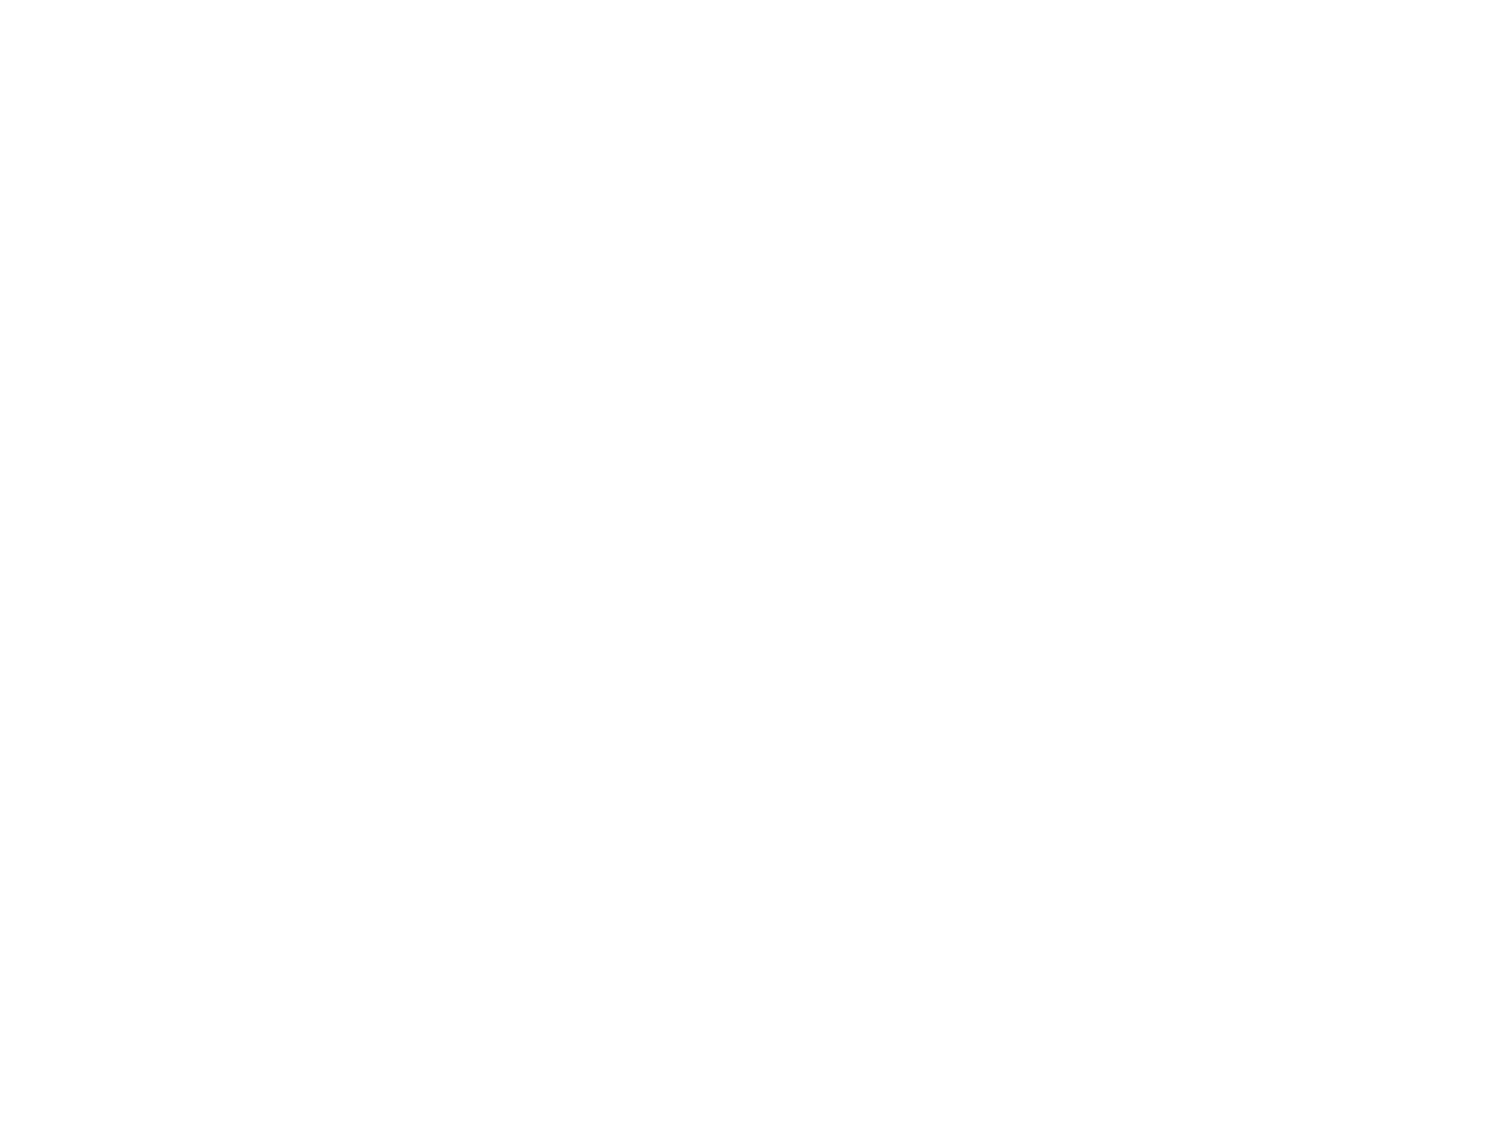 The Frame Theory